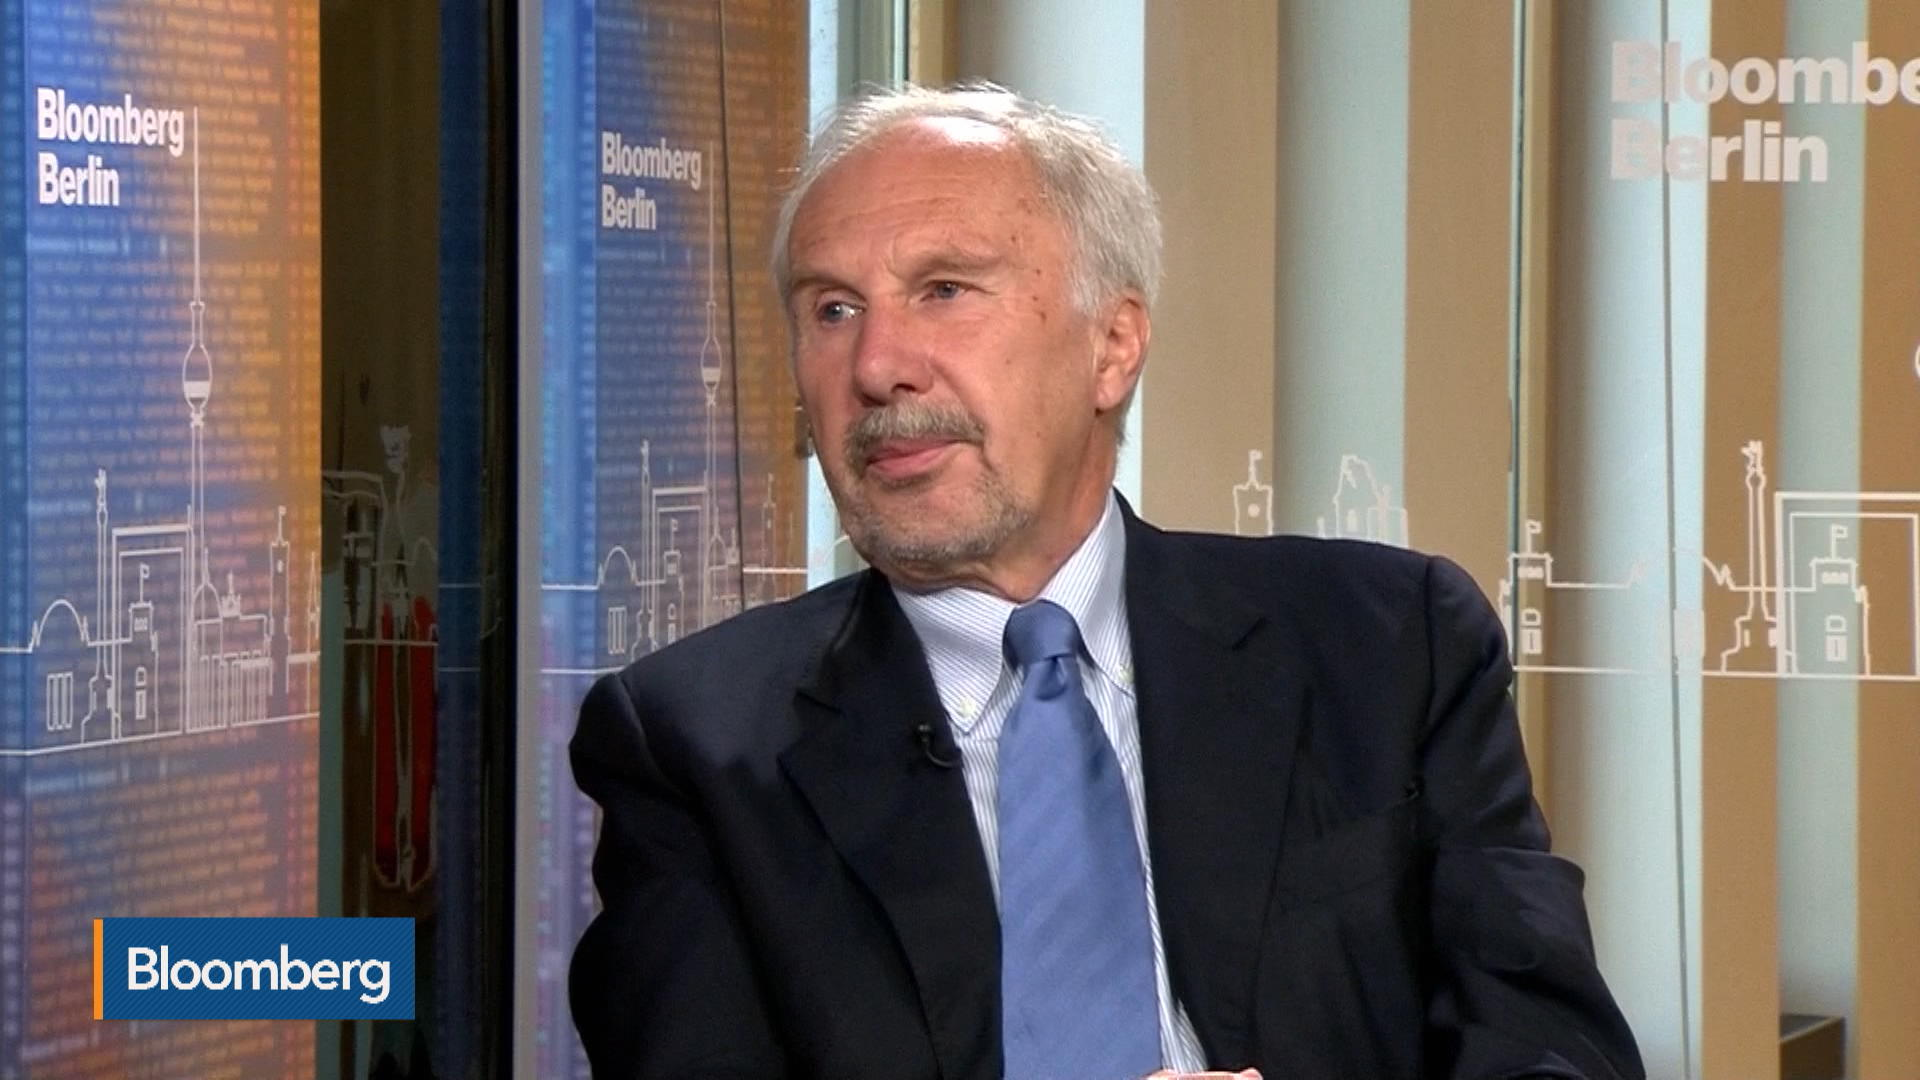 Ewald Nowotny, Former ECB Policy Maker, on Mario Draghi `Insults,' Monetary, Fiscal Policy